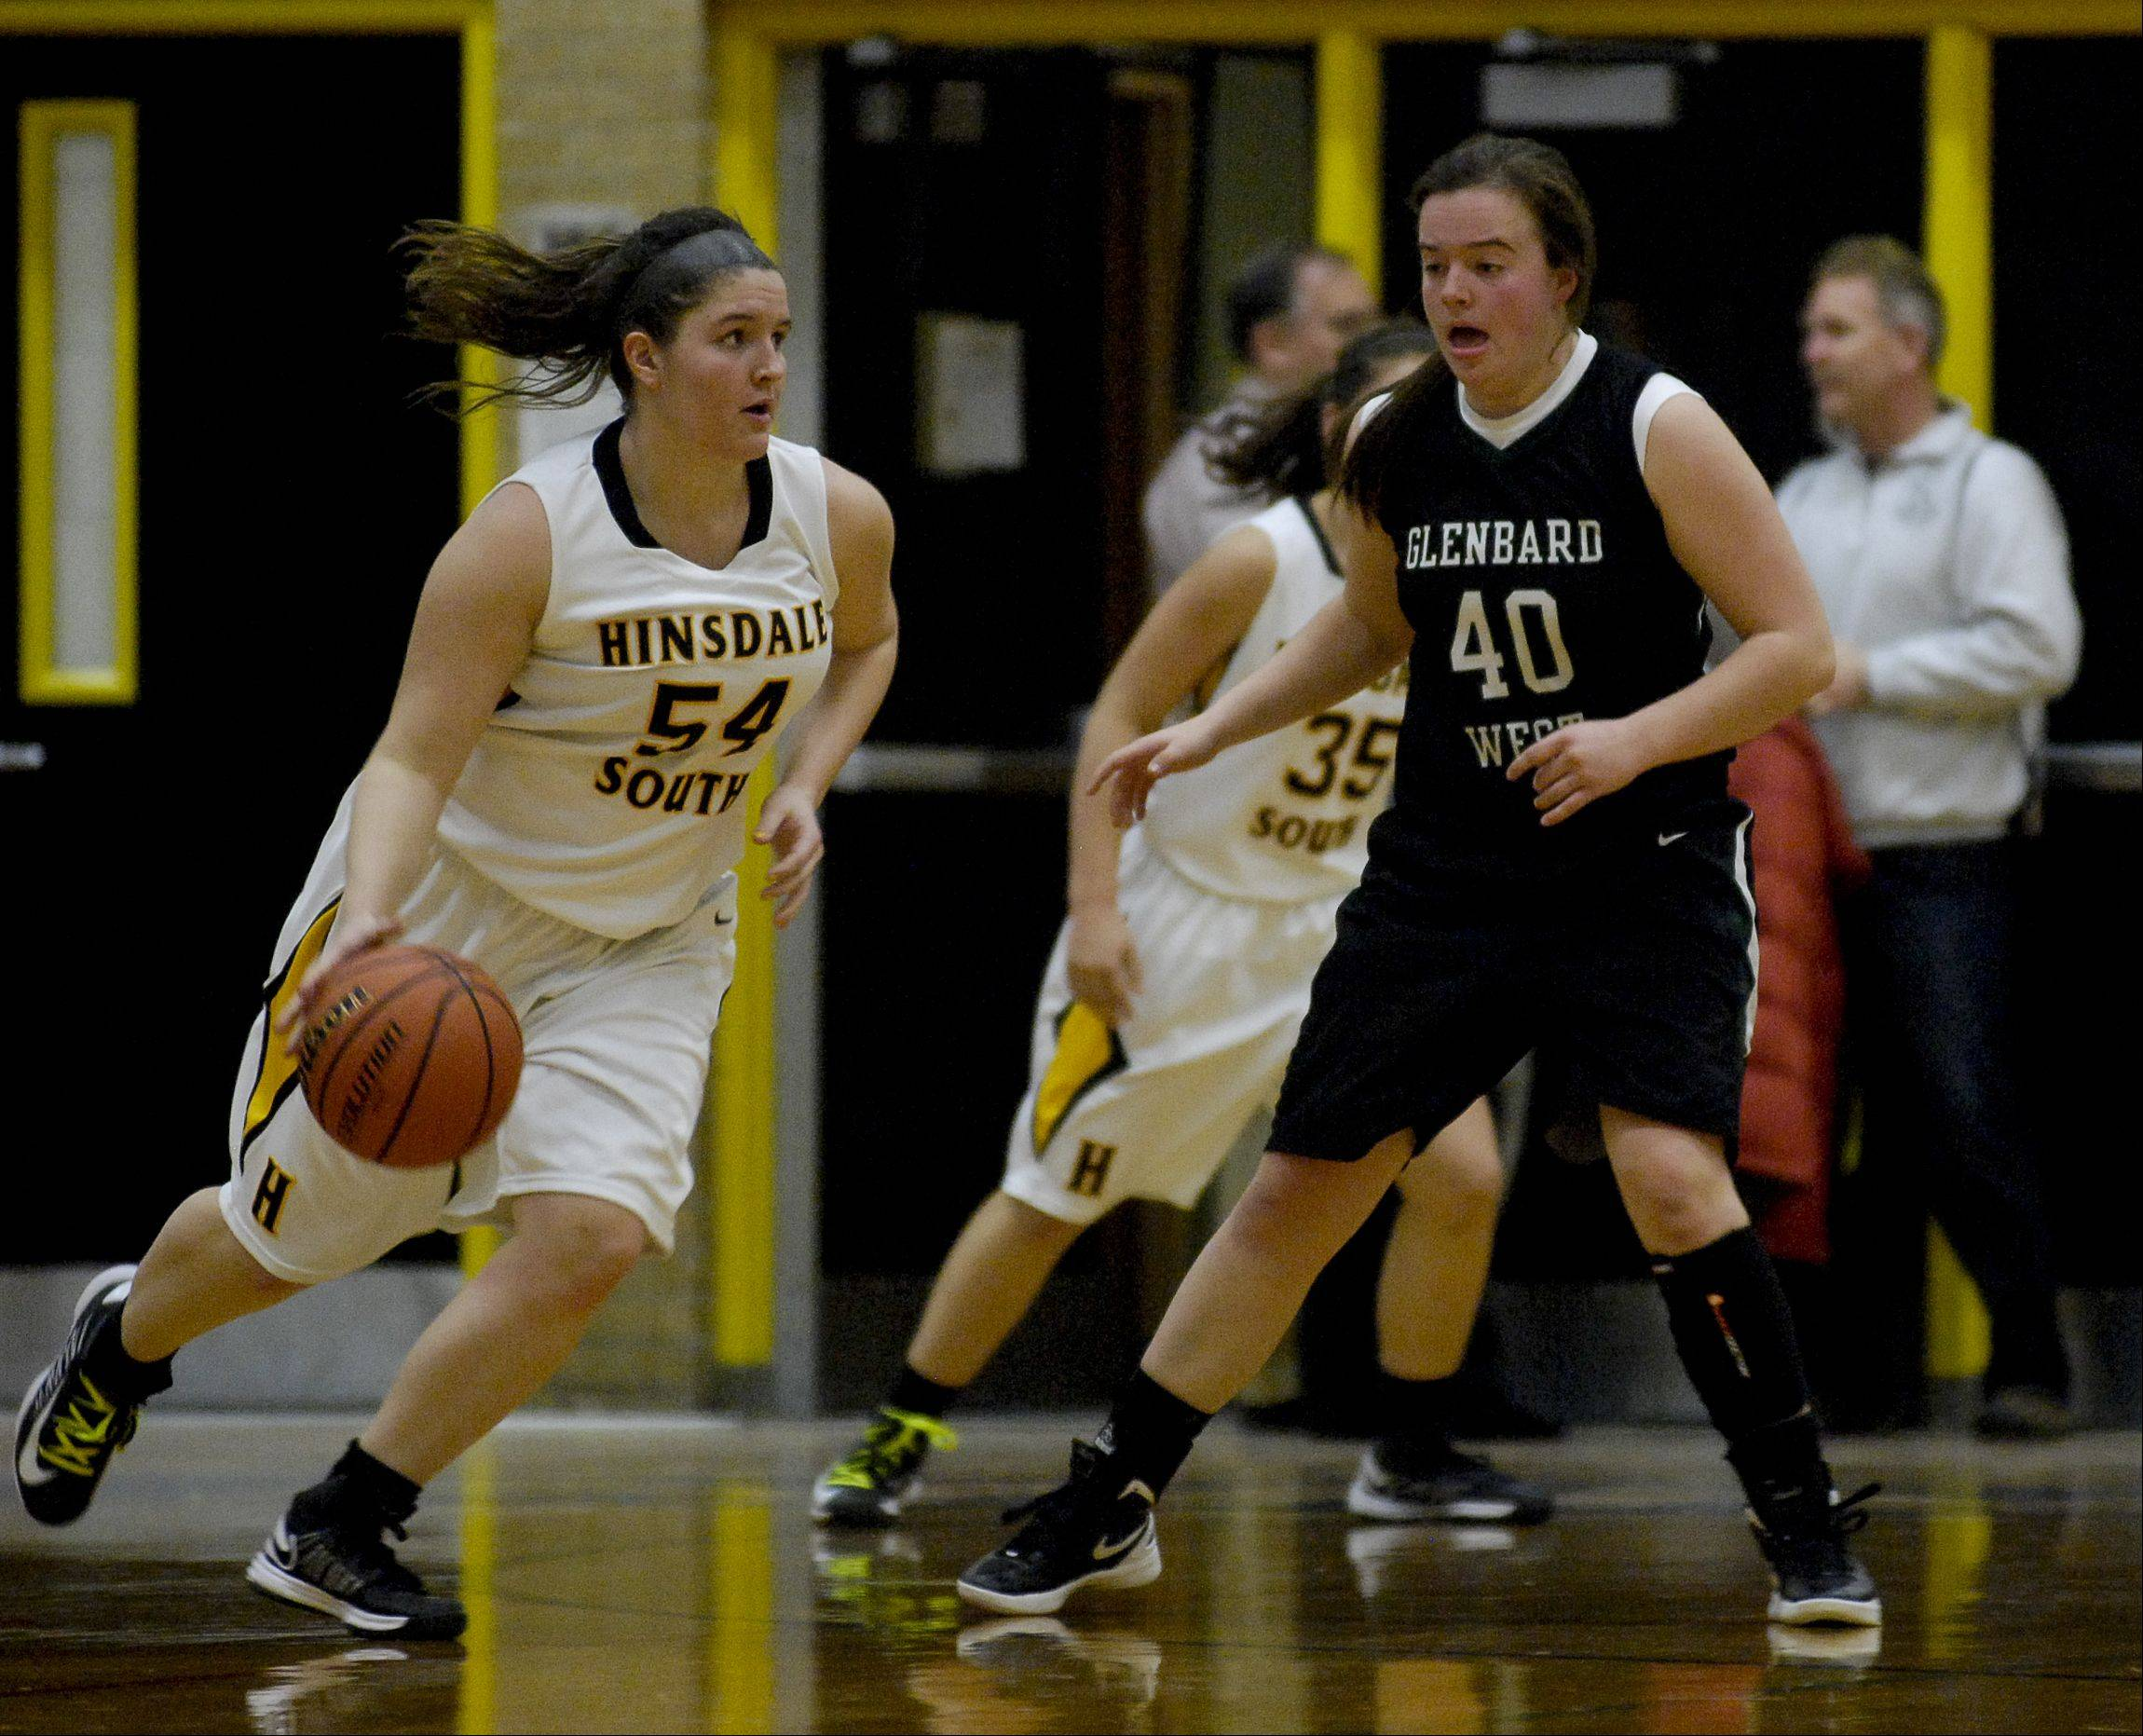 MacKenzie Kern of Hinsdale South High School drives around Claire Graham of Glenbard West.